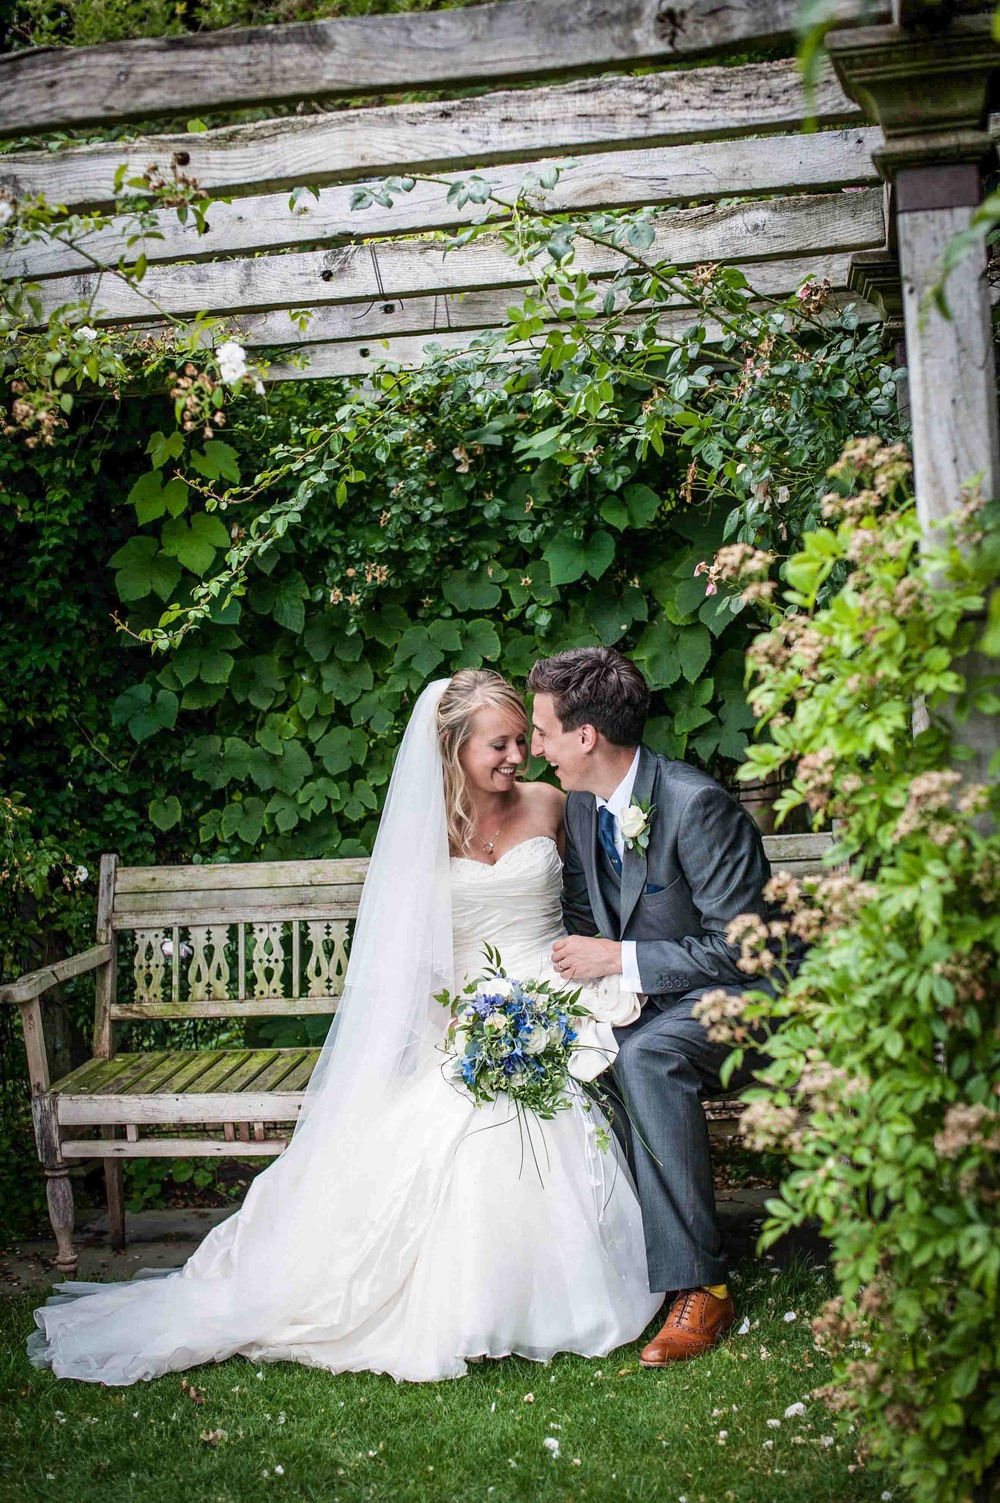 Read more about Elen & Tom's 'Classic Cotswold Barn' Wedding